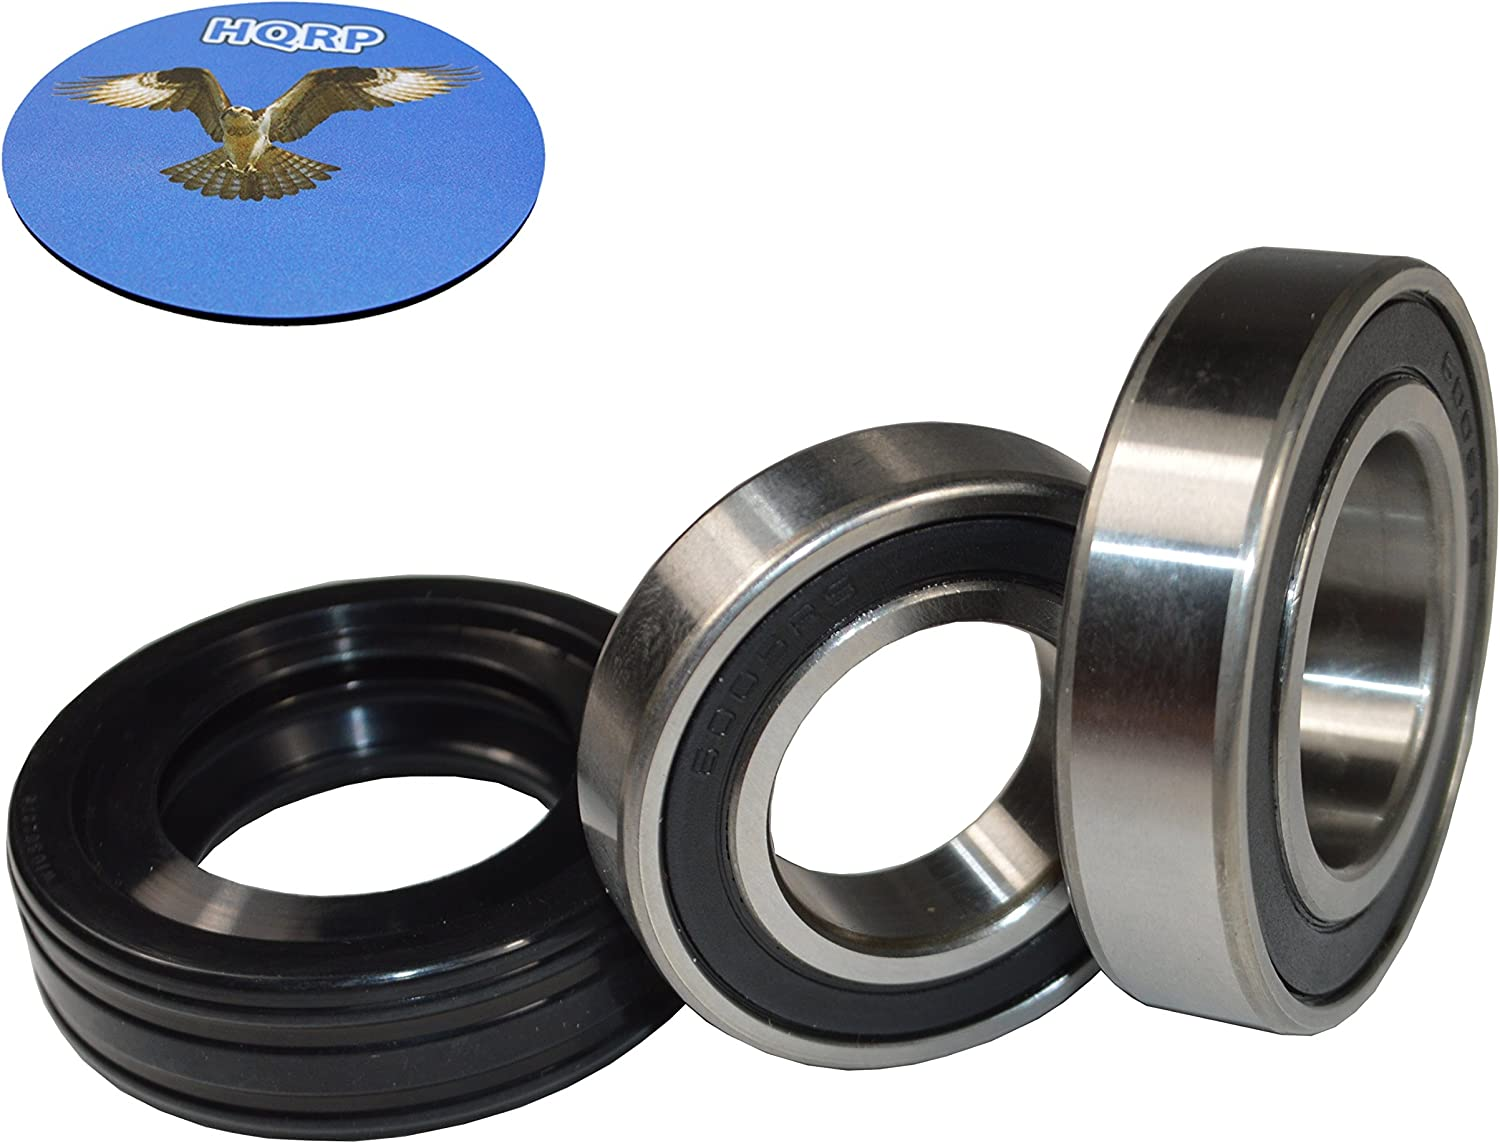 HQRP Bearing and Seal Kit for Whirlpool WTW6200SW0 WTW6200SW1 WTW6200SW2 WTW6200SW3 WTW6200VW0 WTW6300SB0 WTW6300SB1 WTW6300SG0 WTW6300SG1 WTW6300SW0 WTW6300SW1 WTW6300WW0 Washer Tub + HQRP Coaster